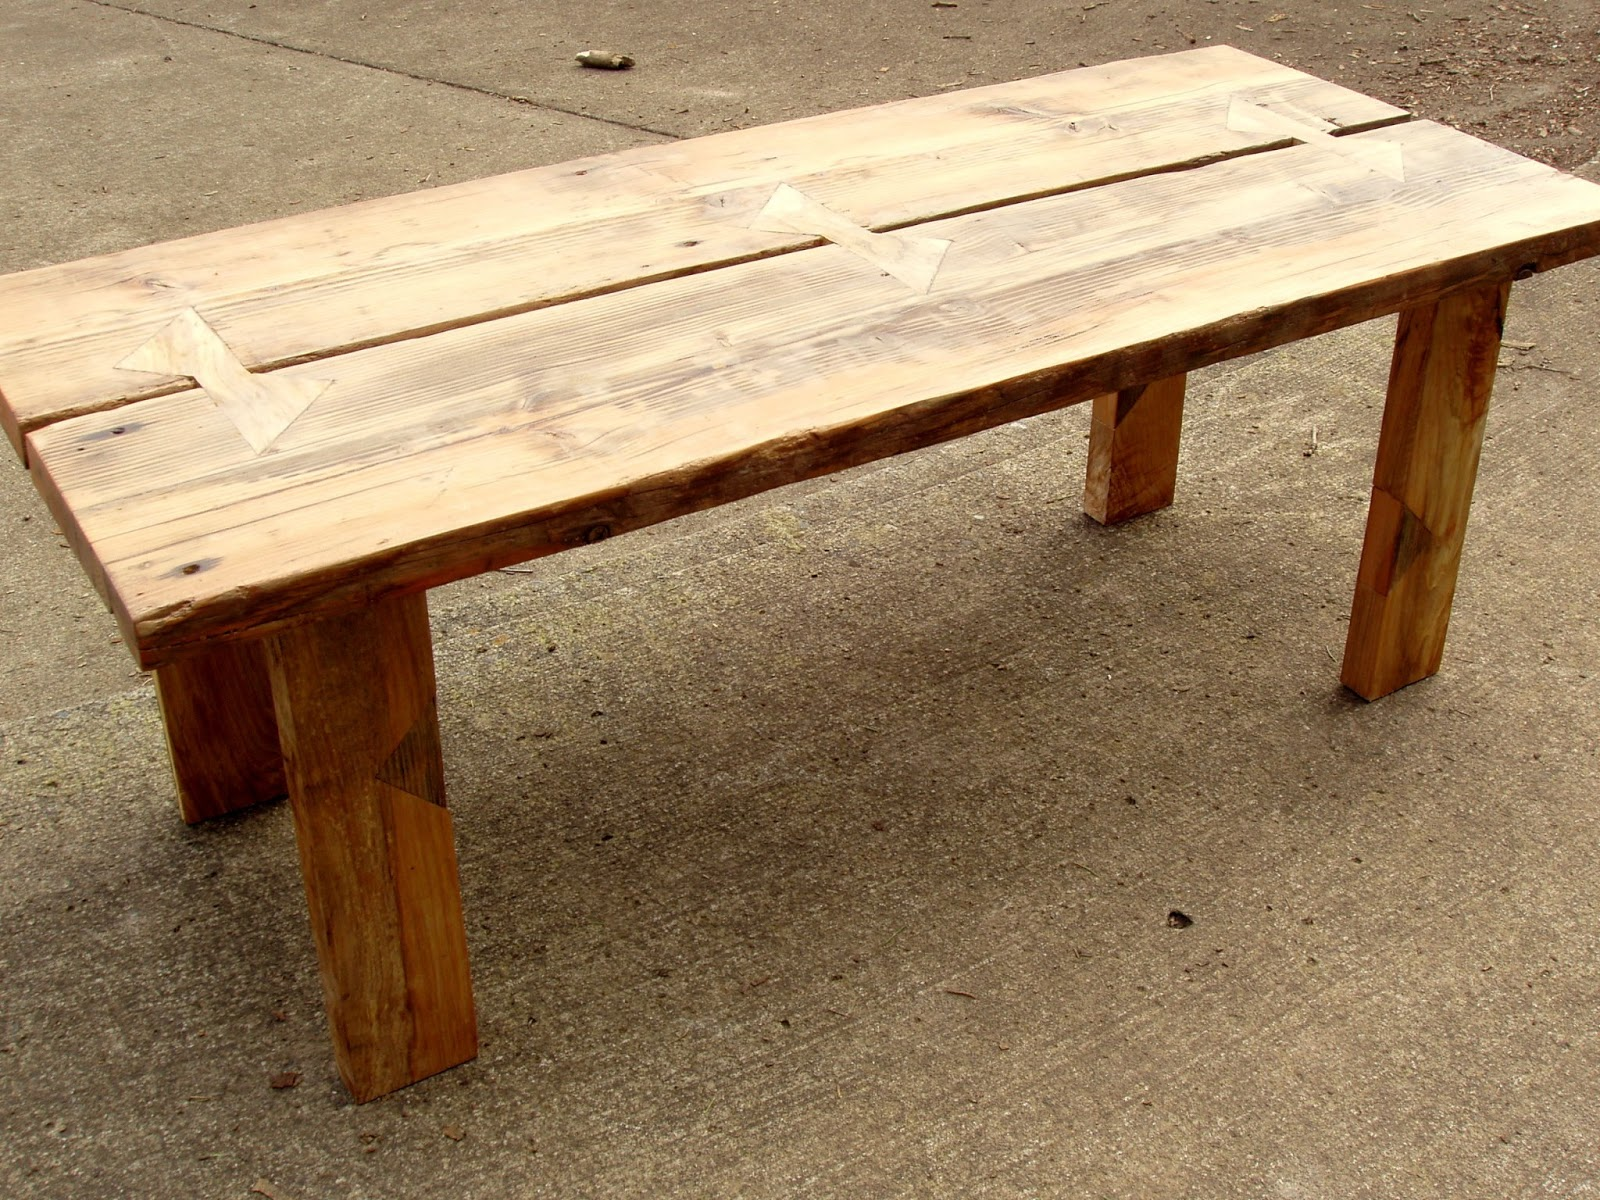 Pnw reclaimed wood furniture for Reclaimed furniture portland